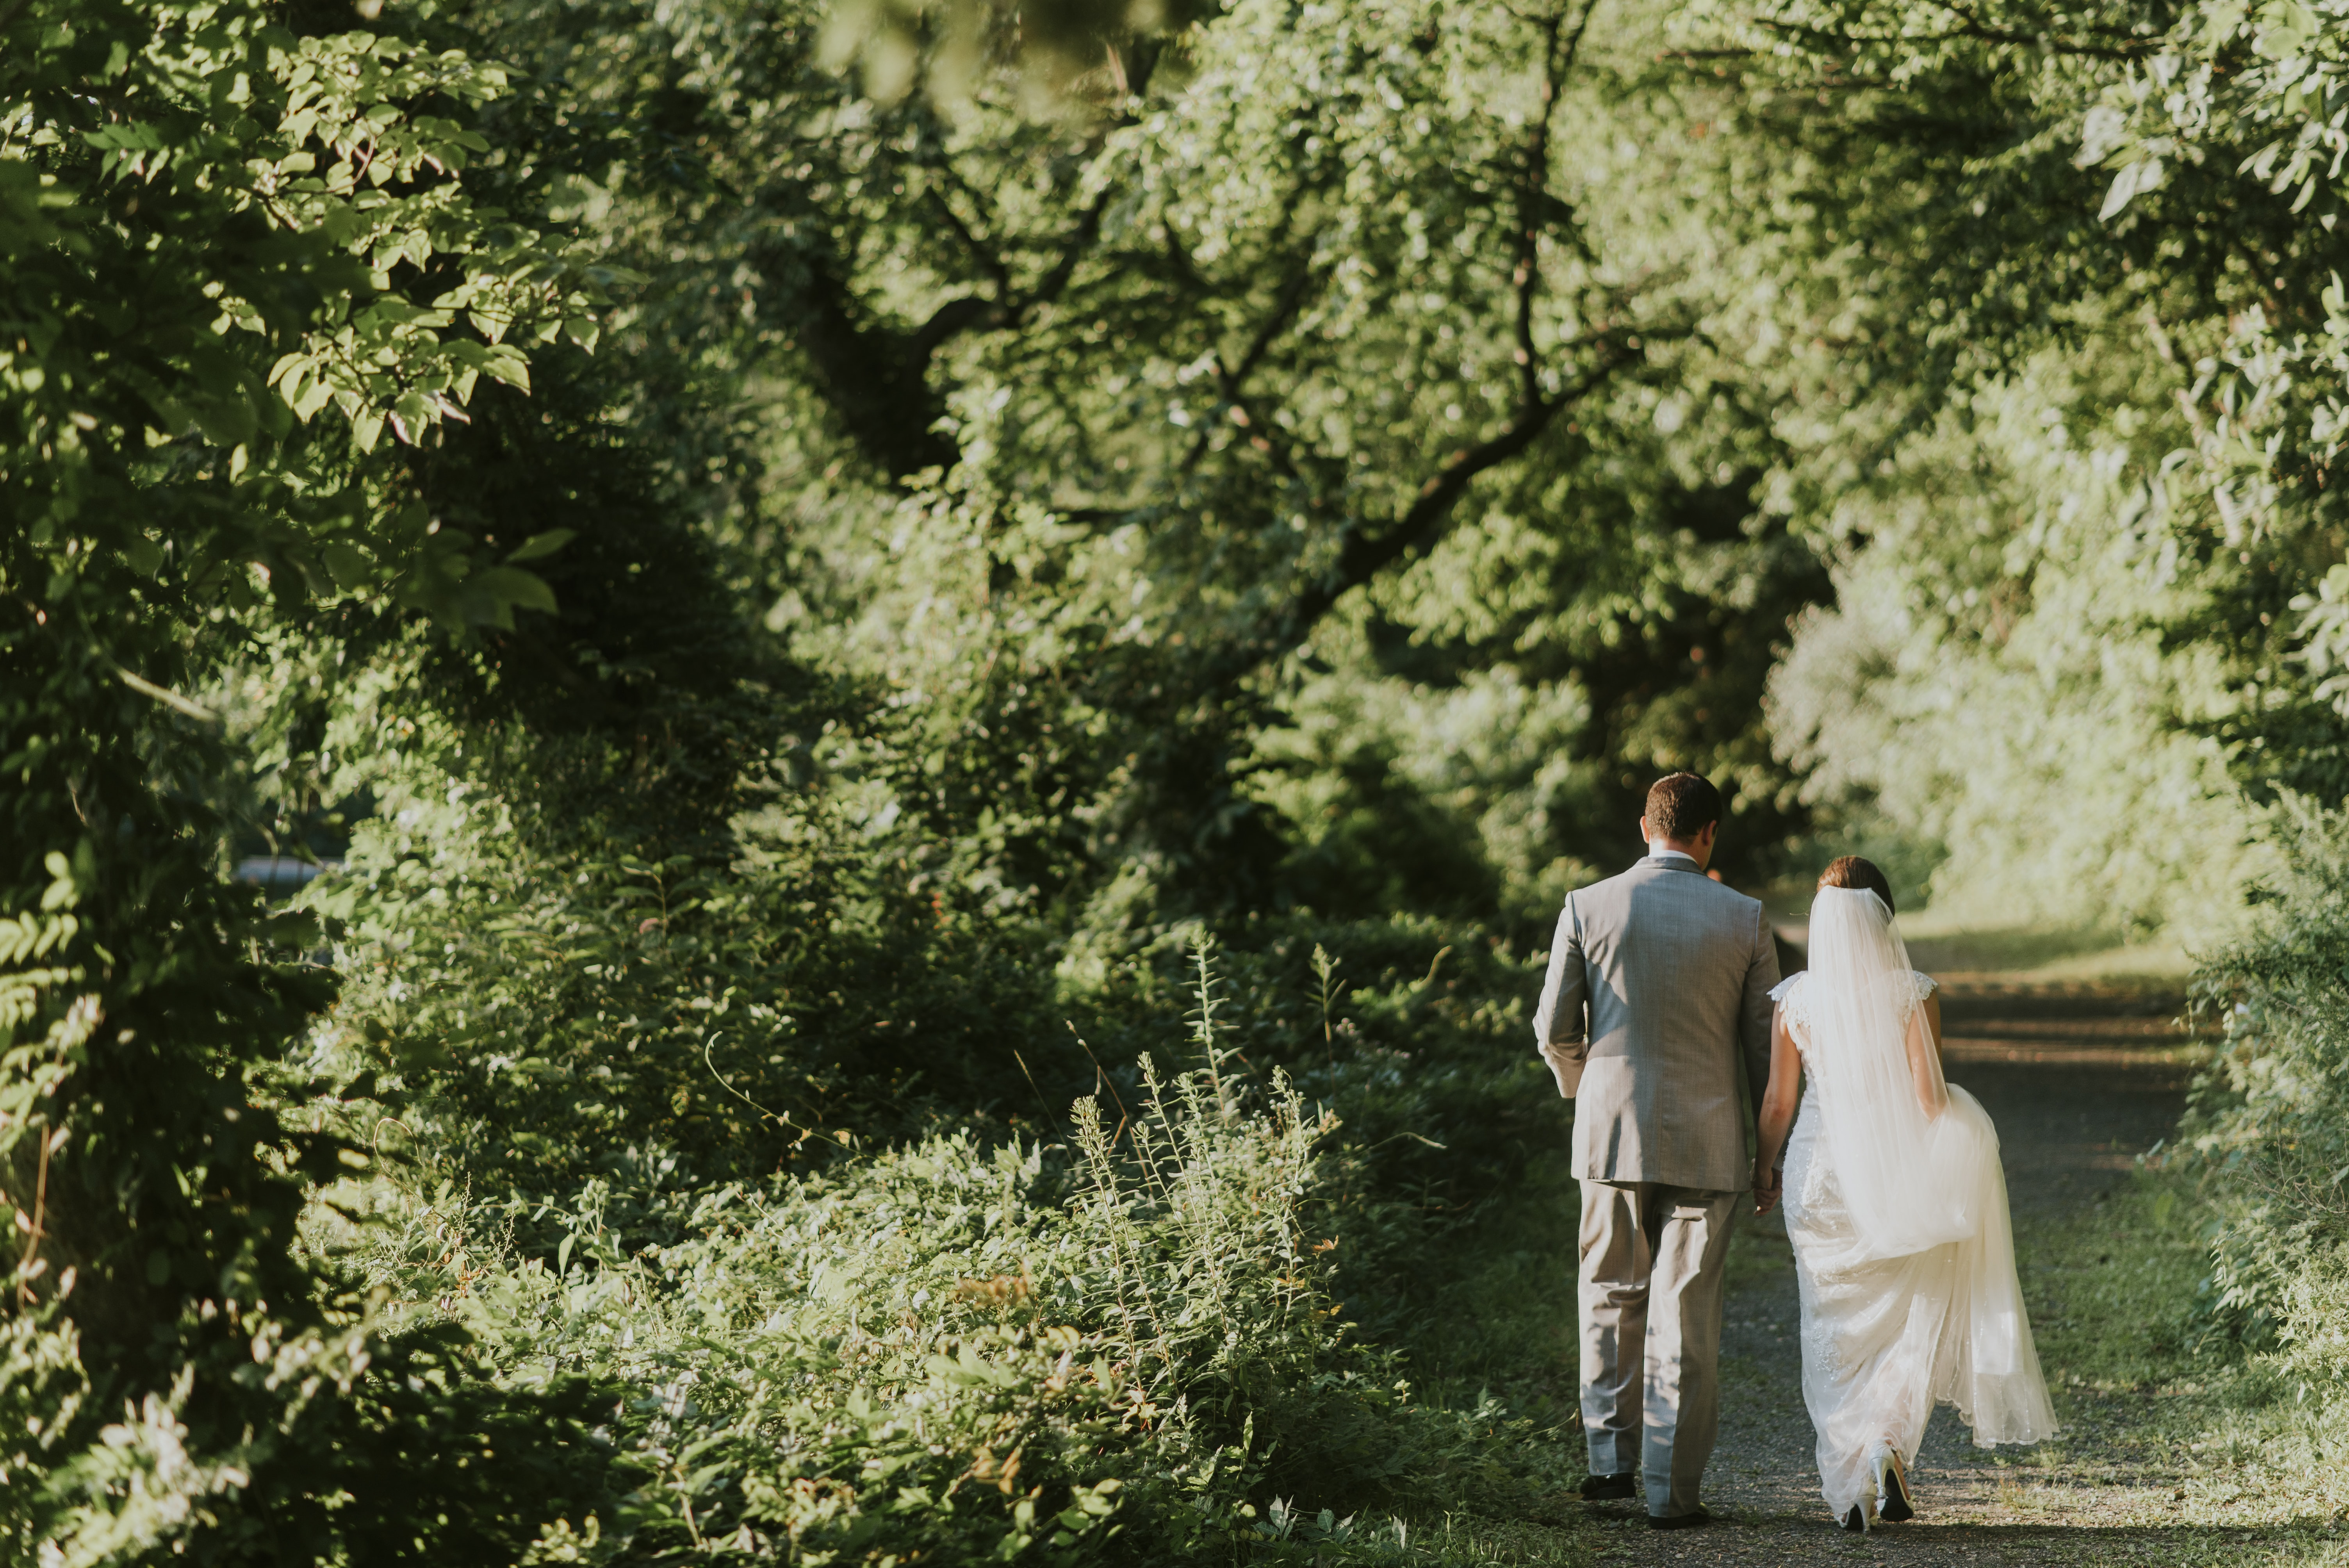 A bridal couple walking on a dirt path lined with trees